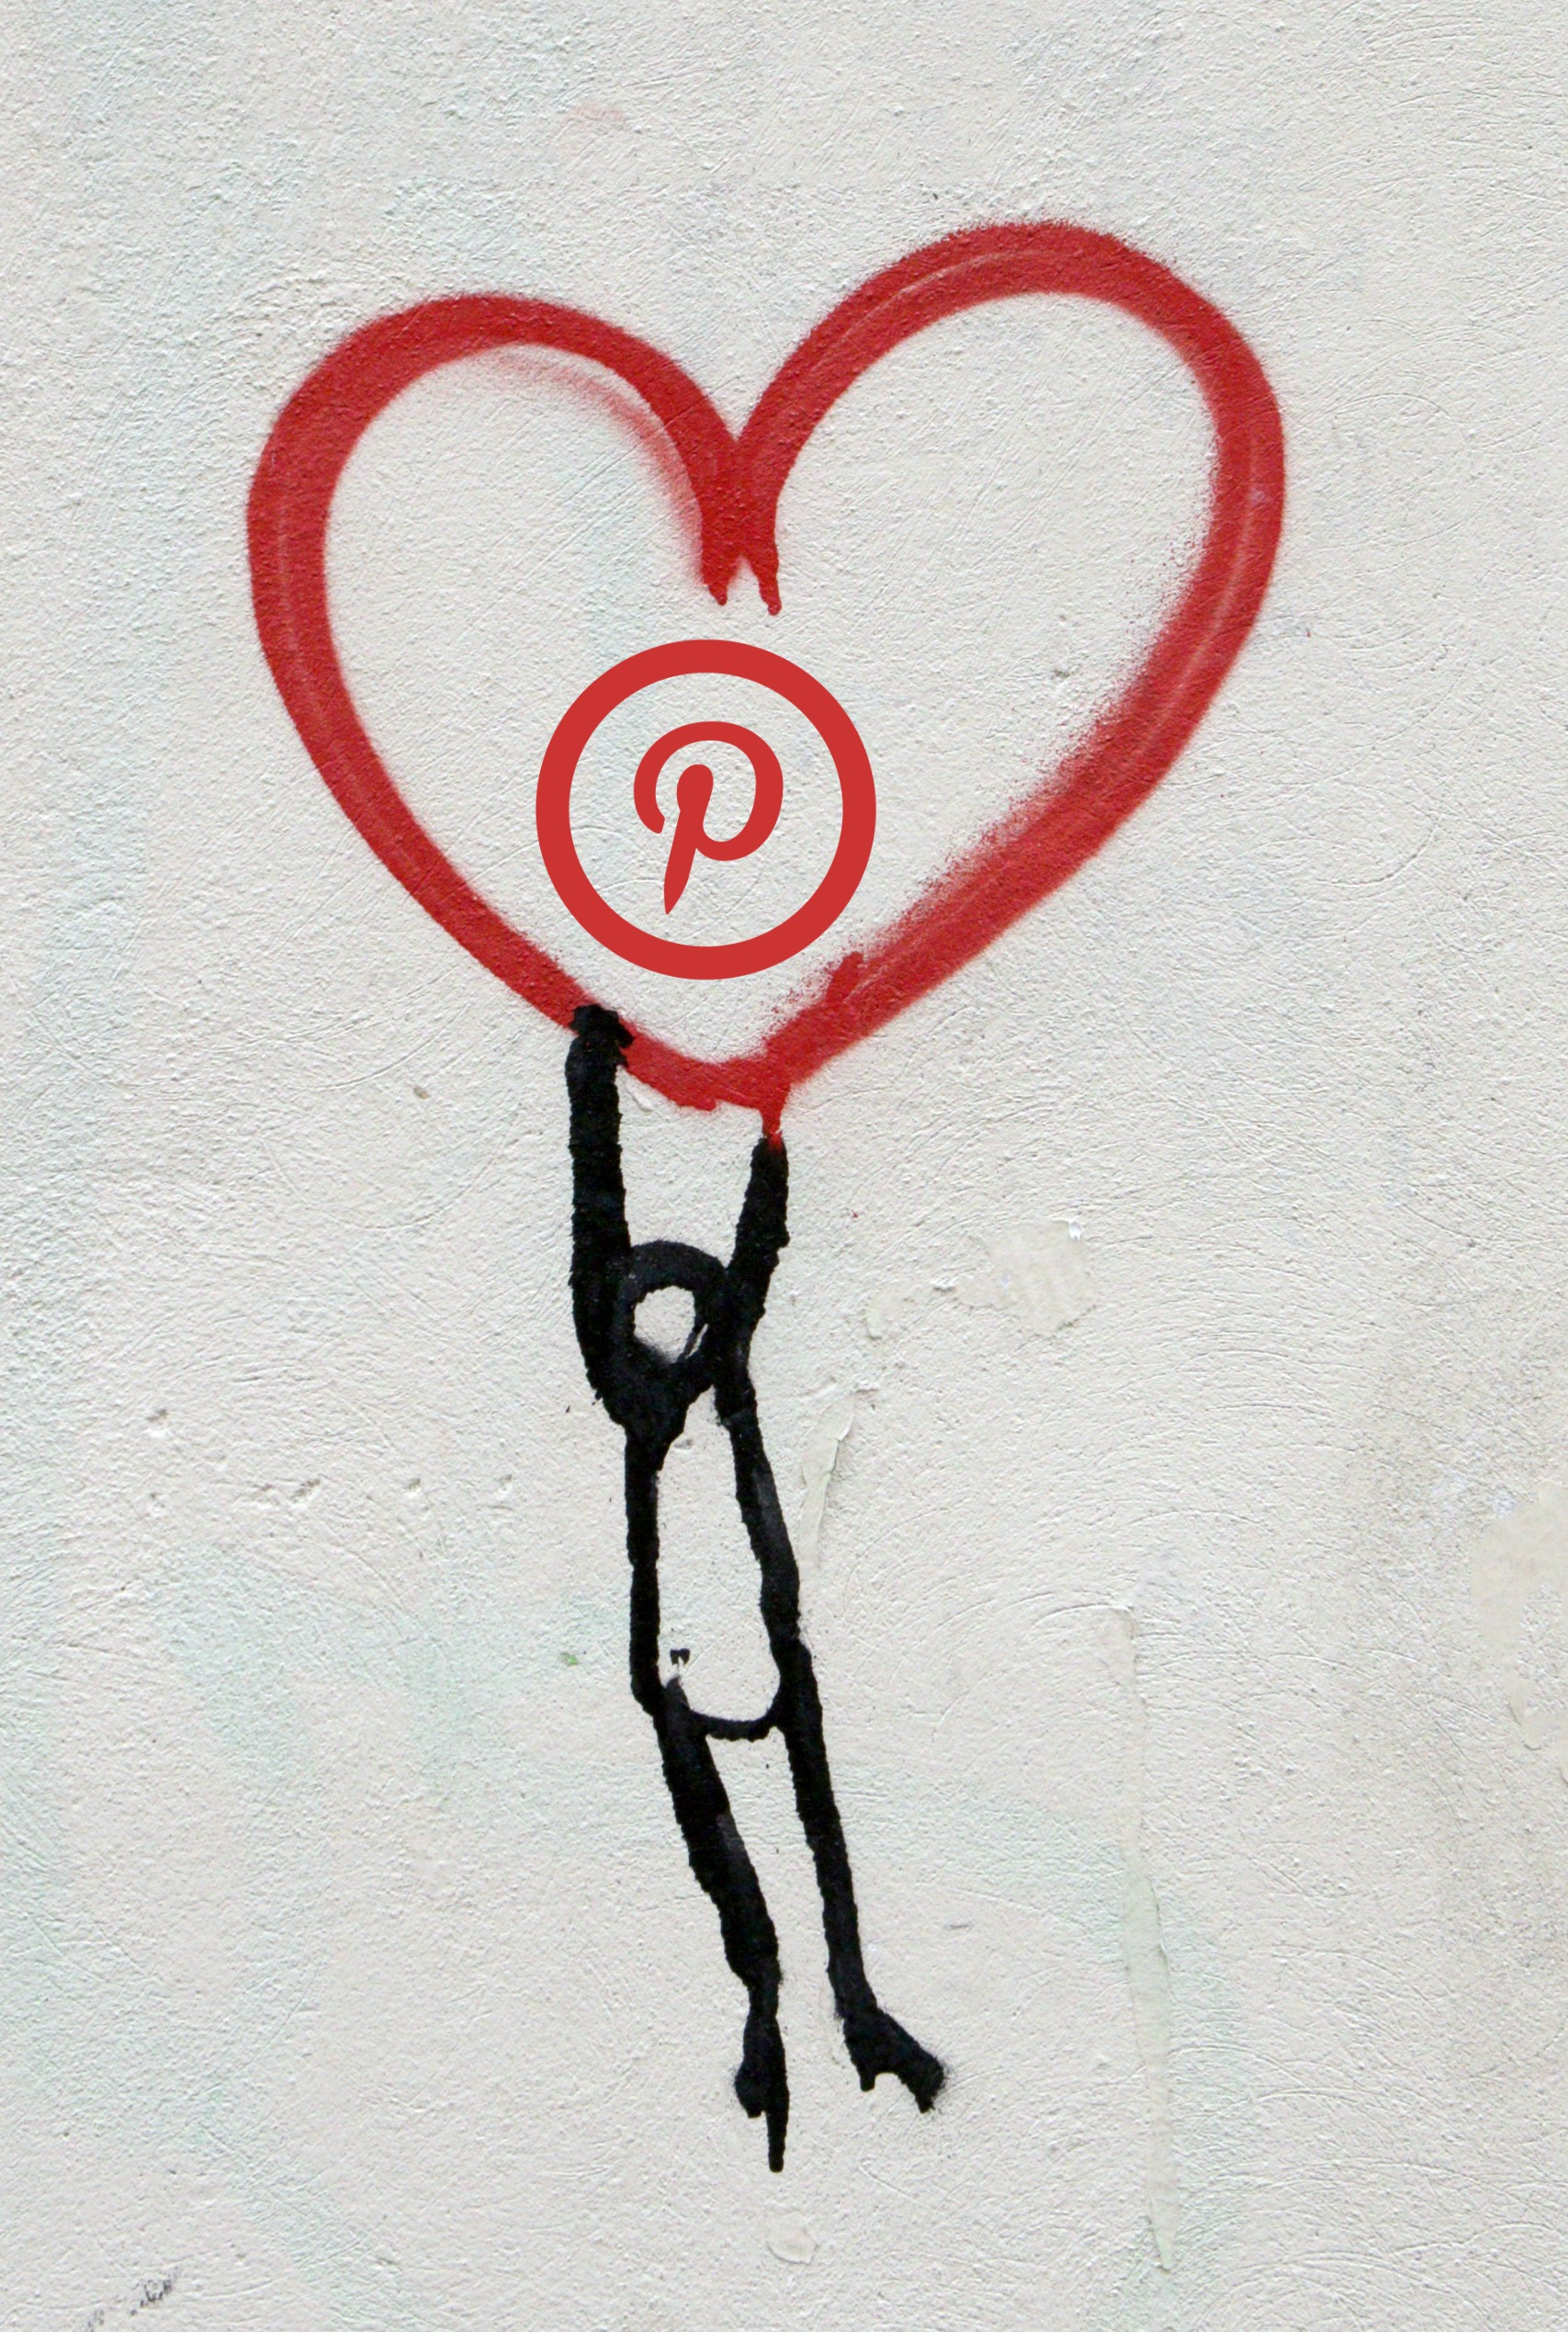 Pinterest Marketing: A Small Business and Bloggers Guide to Increase Your Traffic